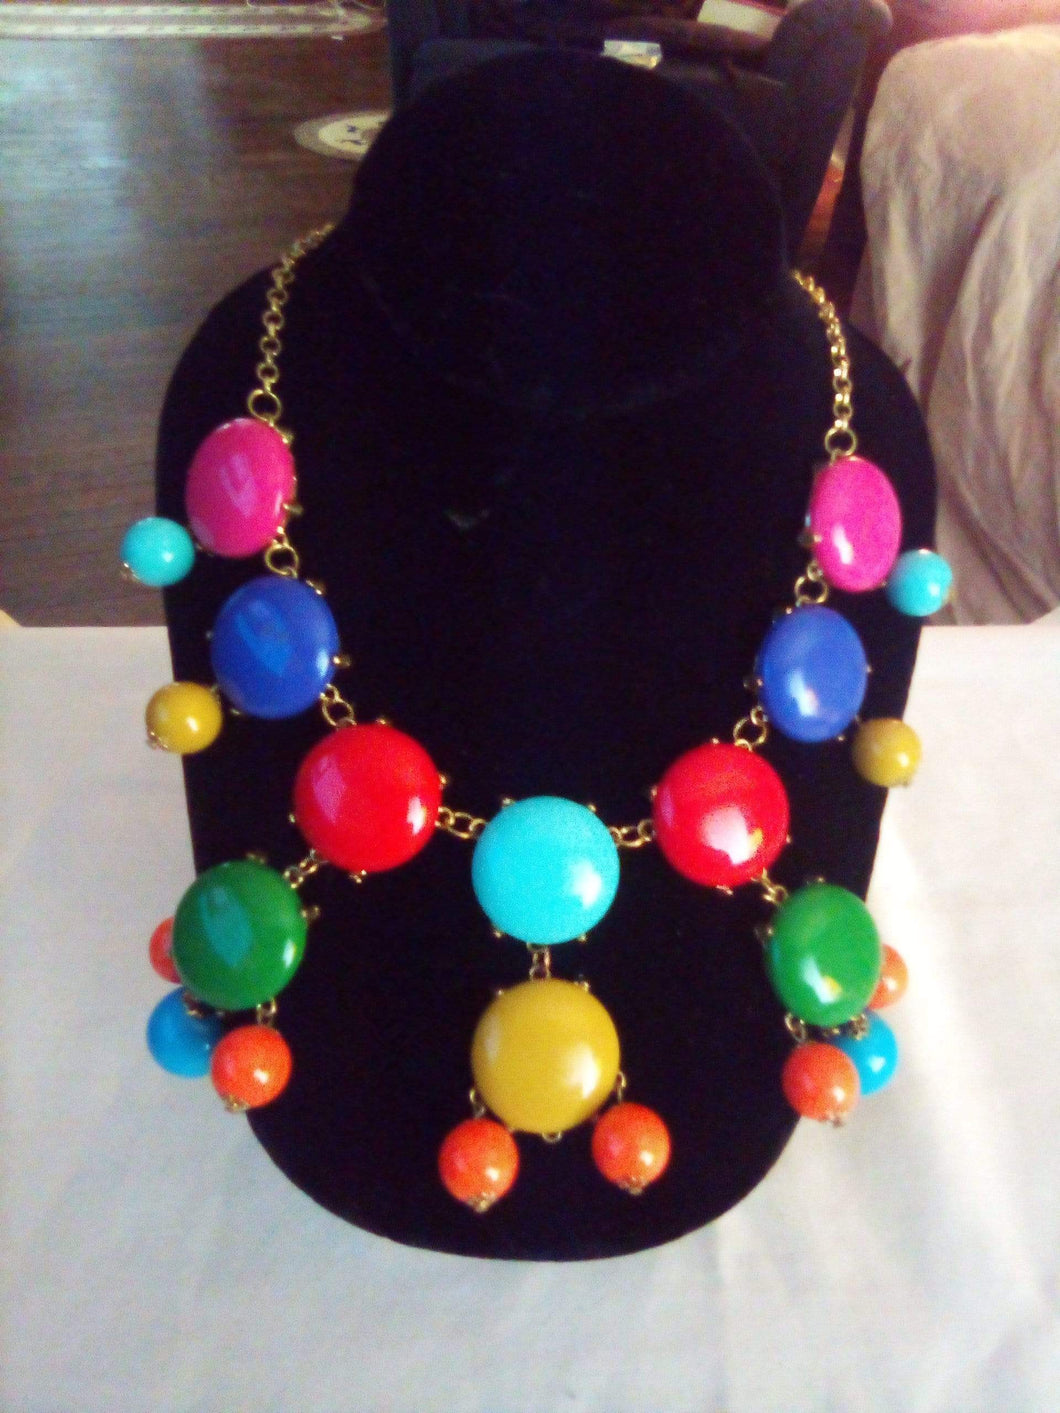 Colorful dressy necklace - B&P'sringsnthings